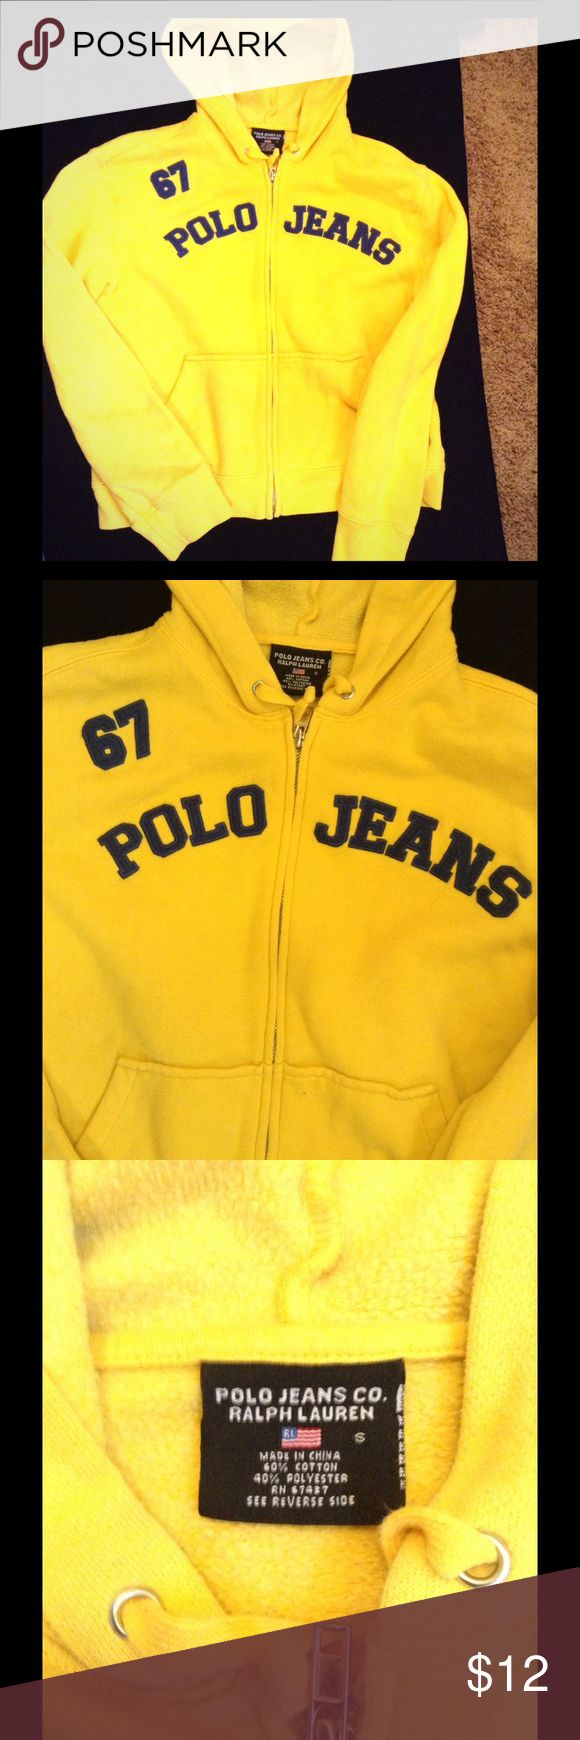 Big boys size small polo jeans hoodie Bright yellow polo jeans hoodie navy lettering size small big boys Polo by Ralph Lauren Shirts & Tops Sweatshirts & Hoodies